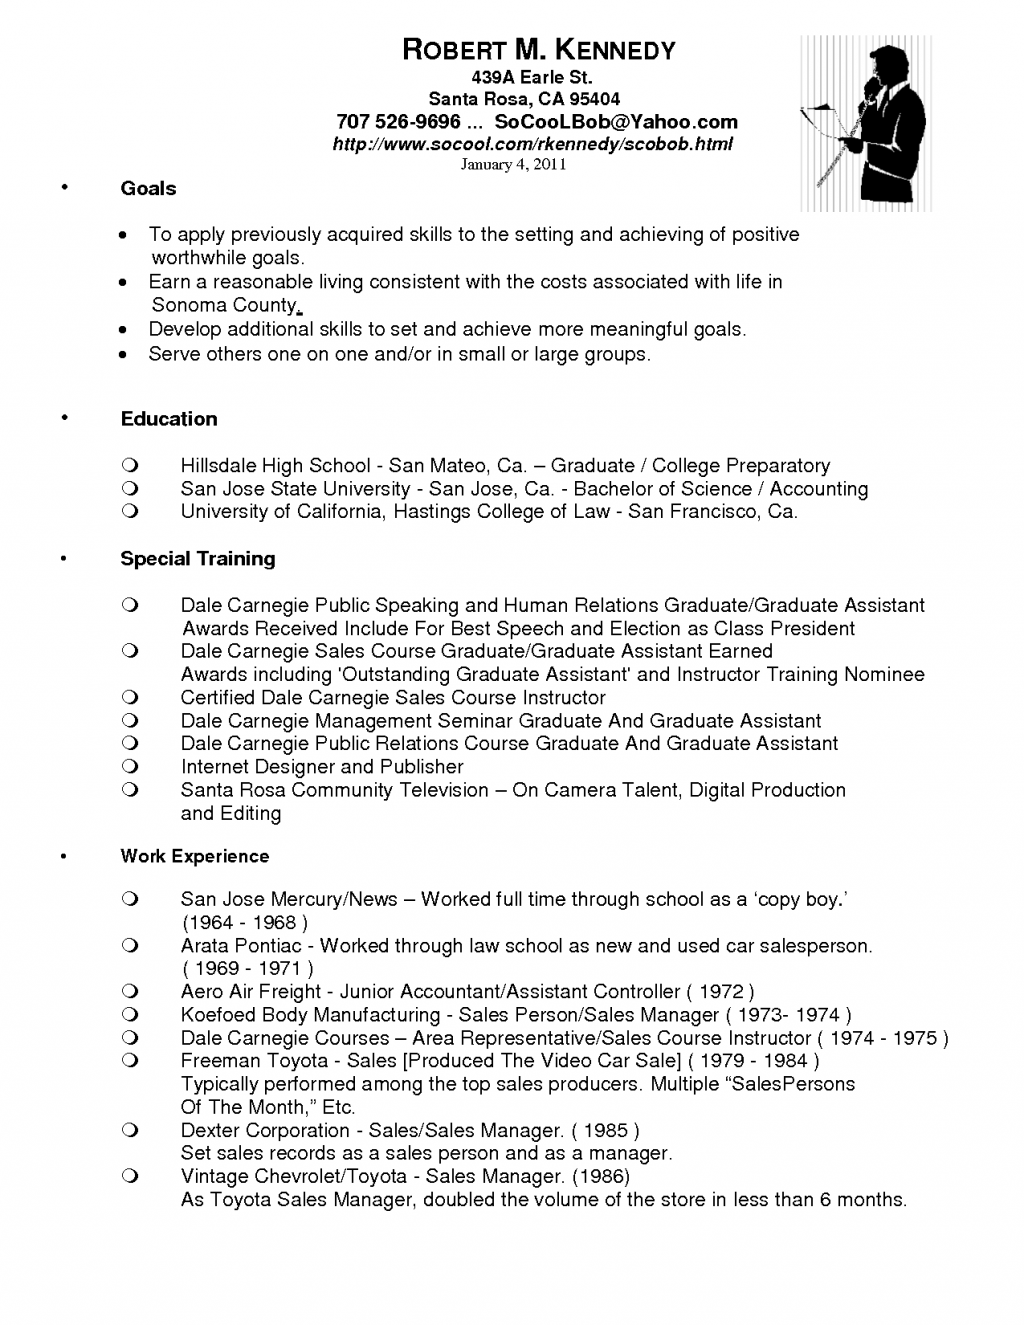 Amazing Car Sales Resume Bullet Points Contemporary Exle Resume